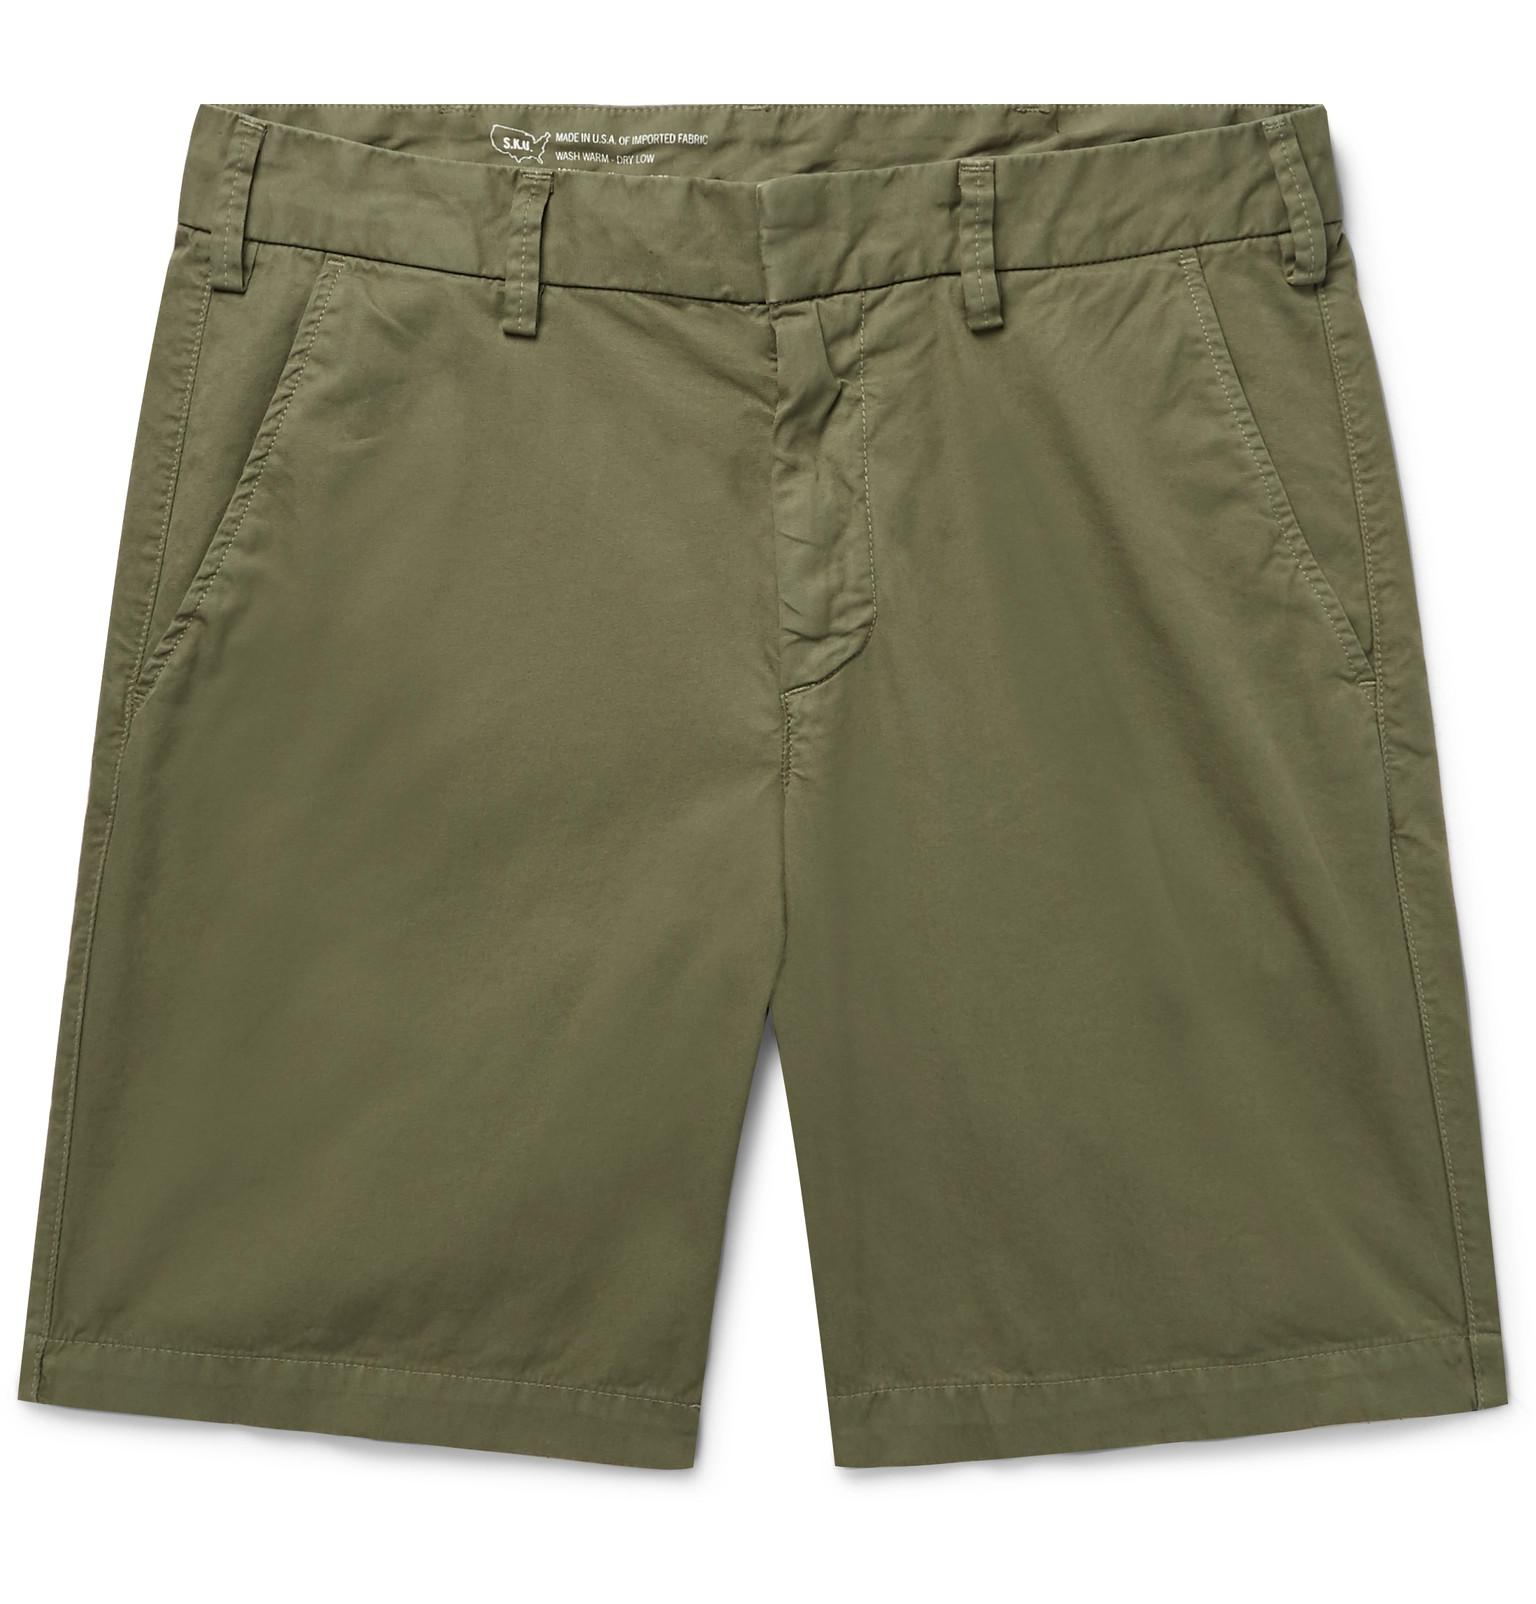 Outlet Huge Surprise Comfortable Slim-fit Cotton-twill Bermuda Shorts SAVE KHAKI UNITED Clearance Get Authentic xb0w7DBy